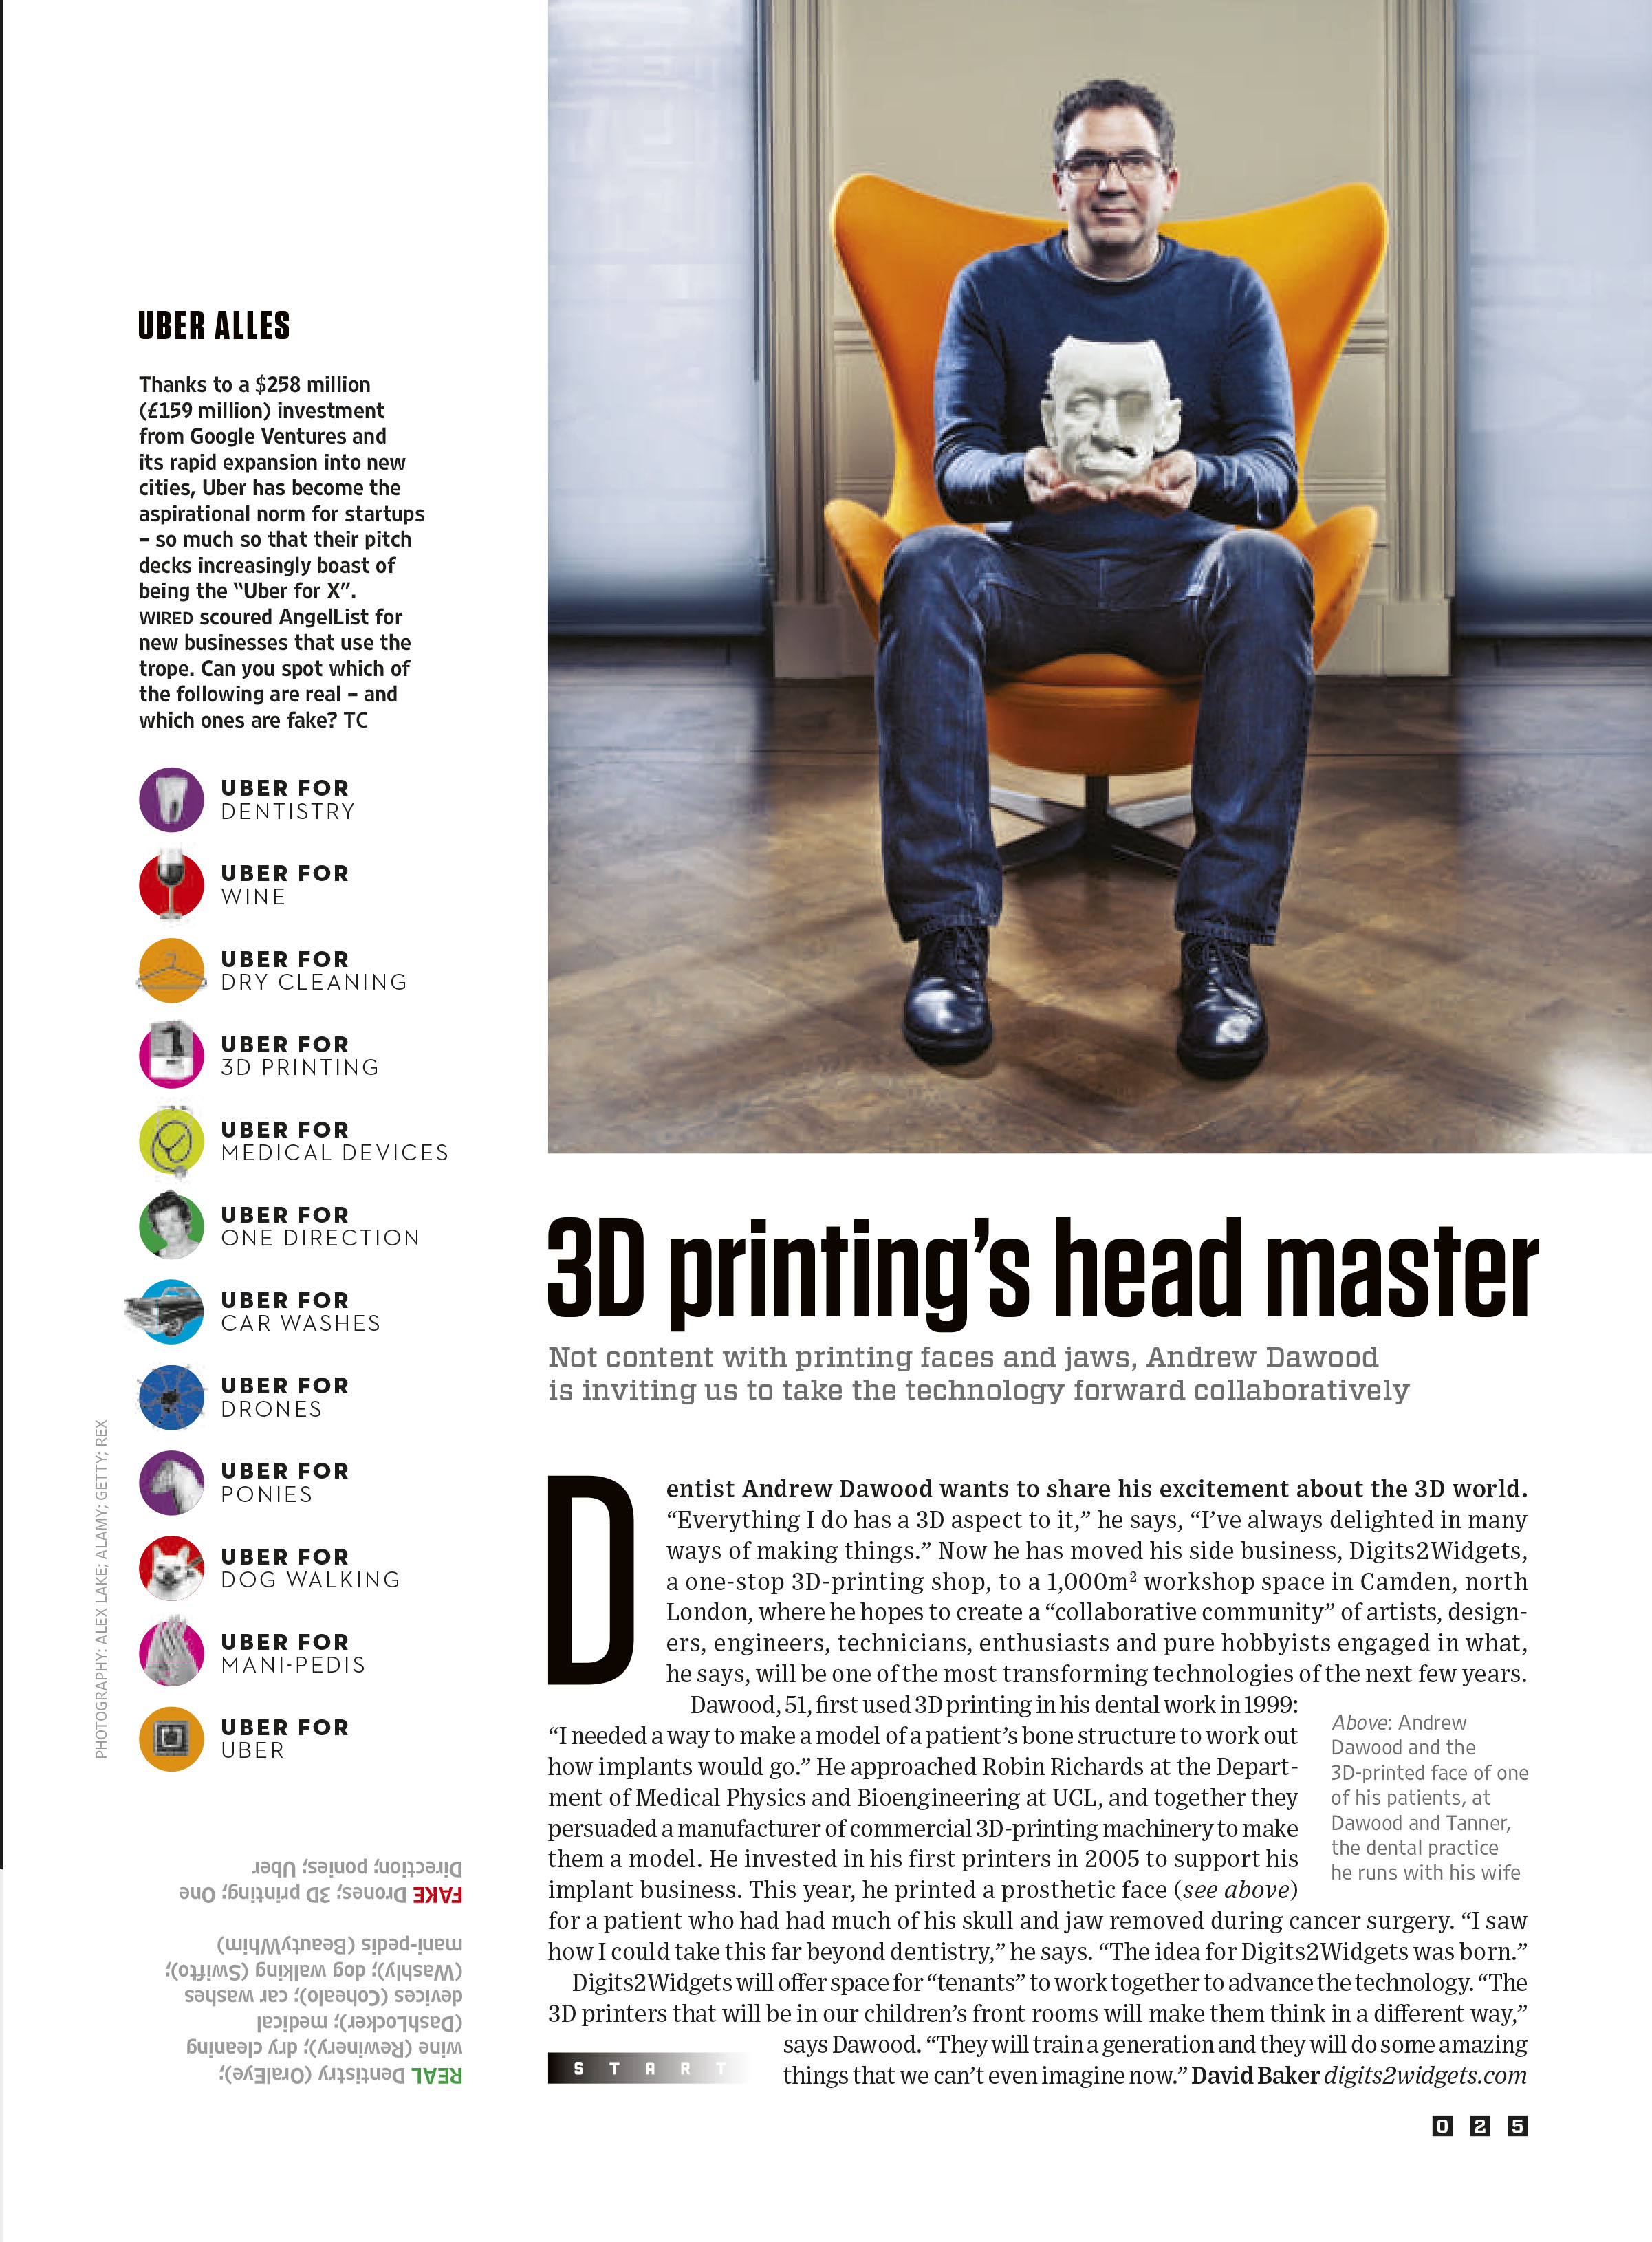 wired article